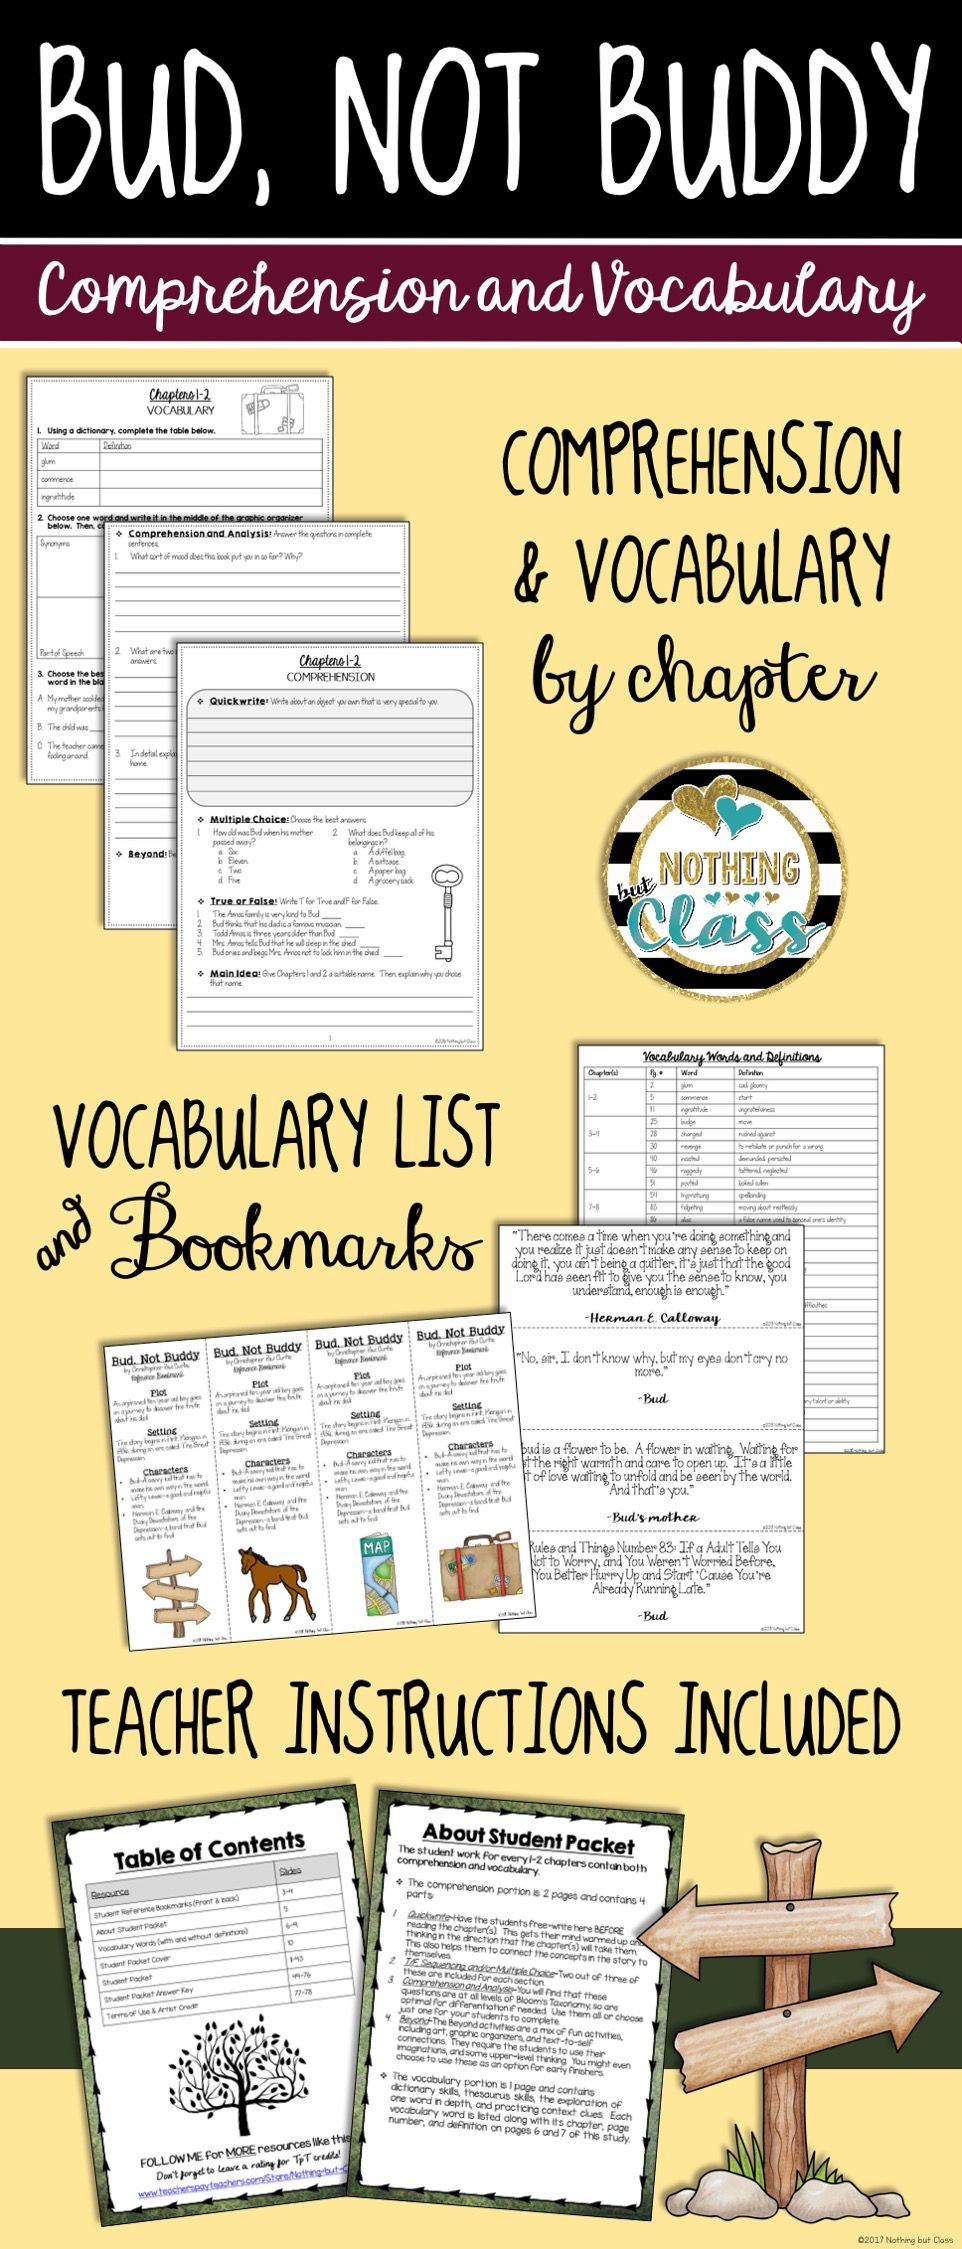 Uncategorized Bud Not Buddy Worksheets bud not buddy comprehension and vocabulary by chapter